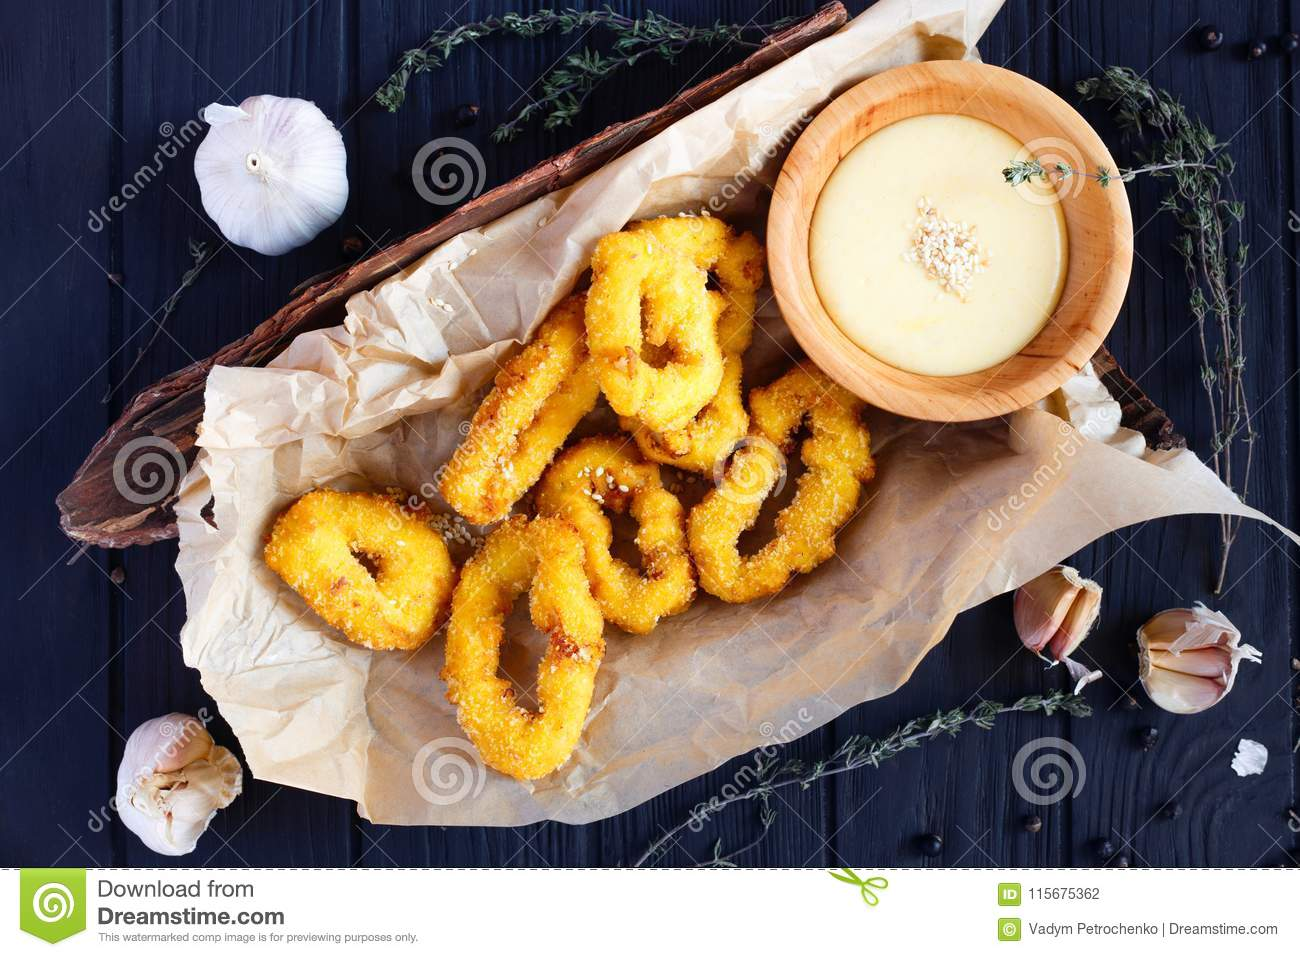 Fried Onion Rings In Breadcrumbs With Creamy Sauce